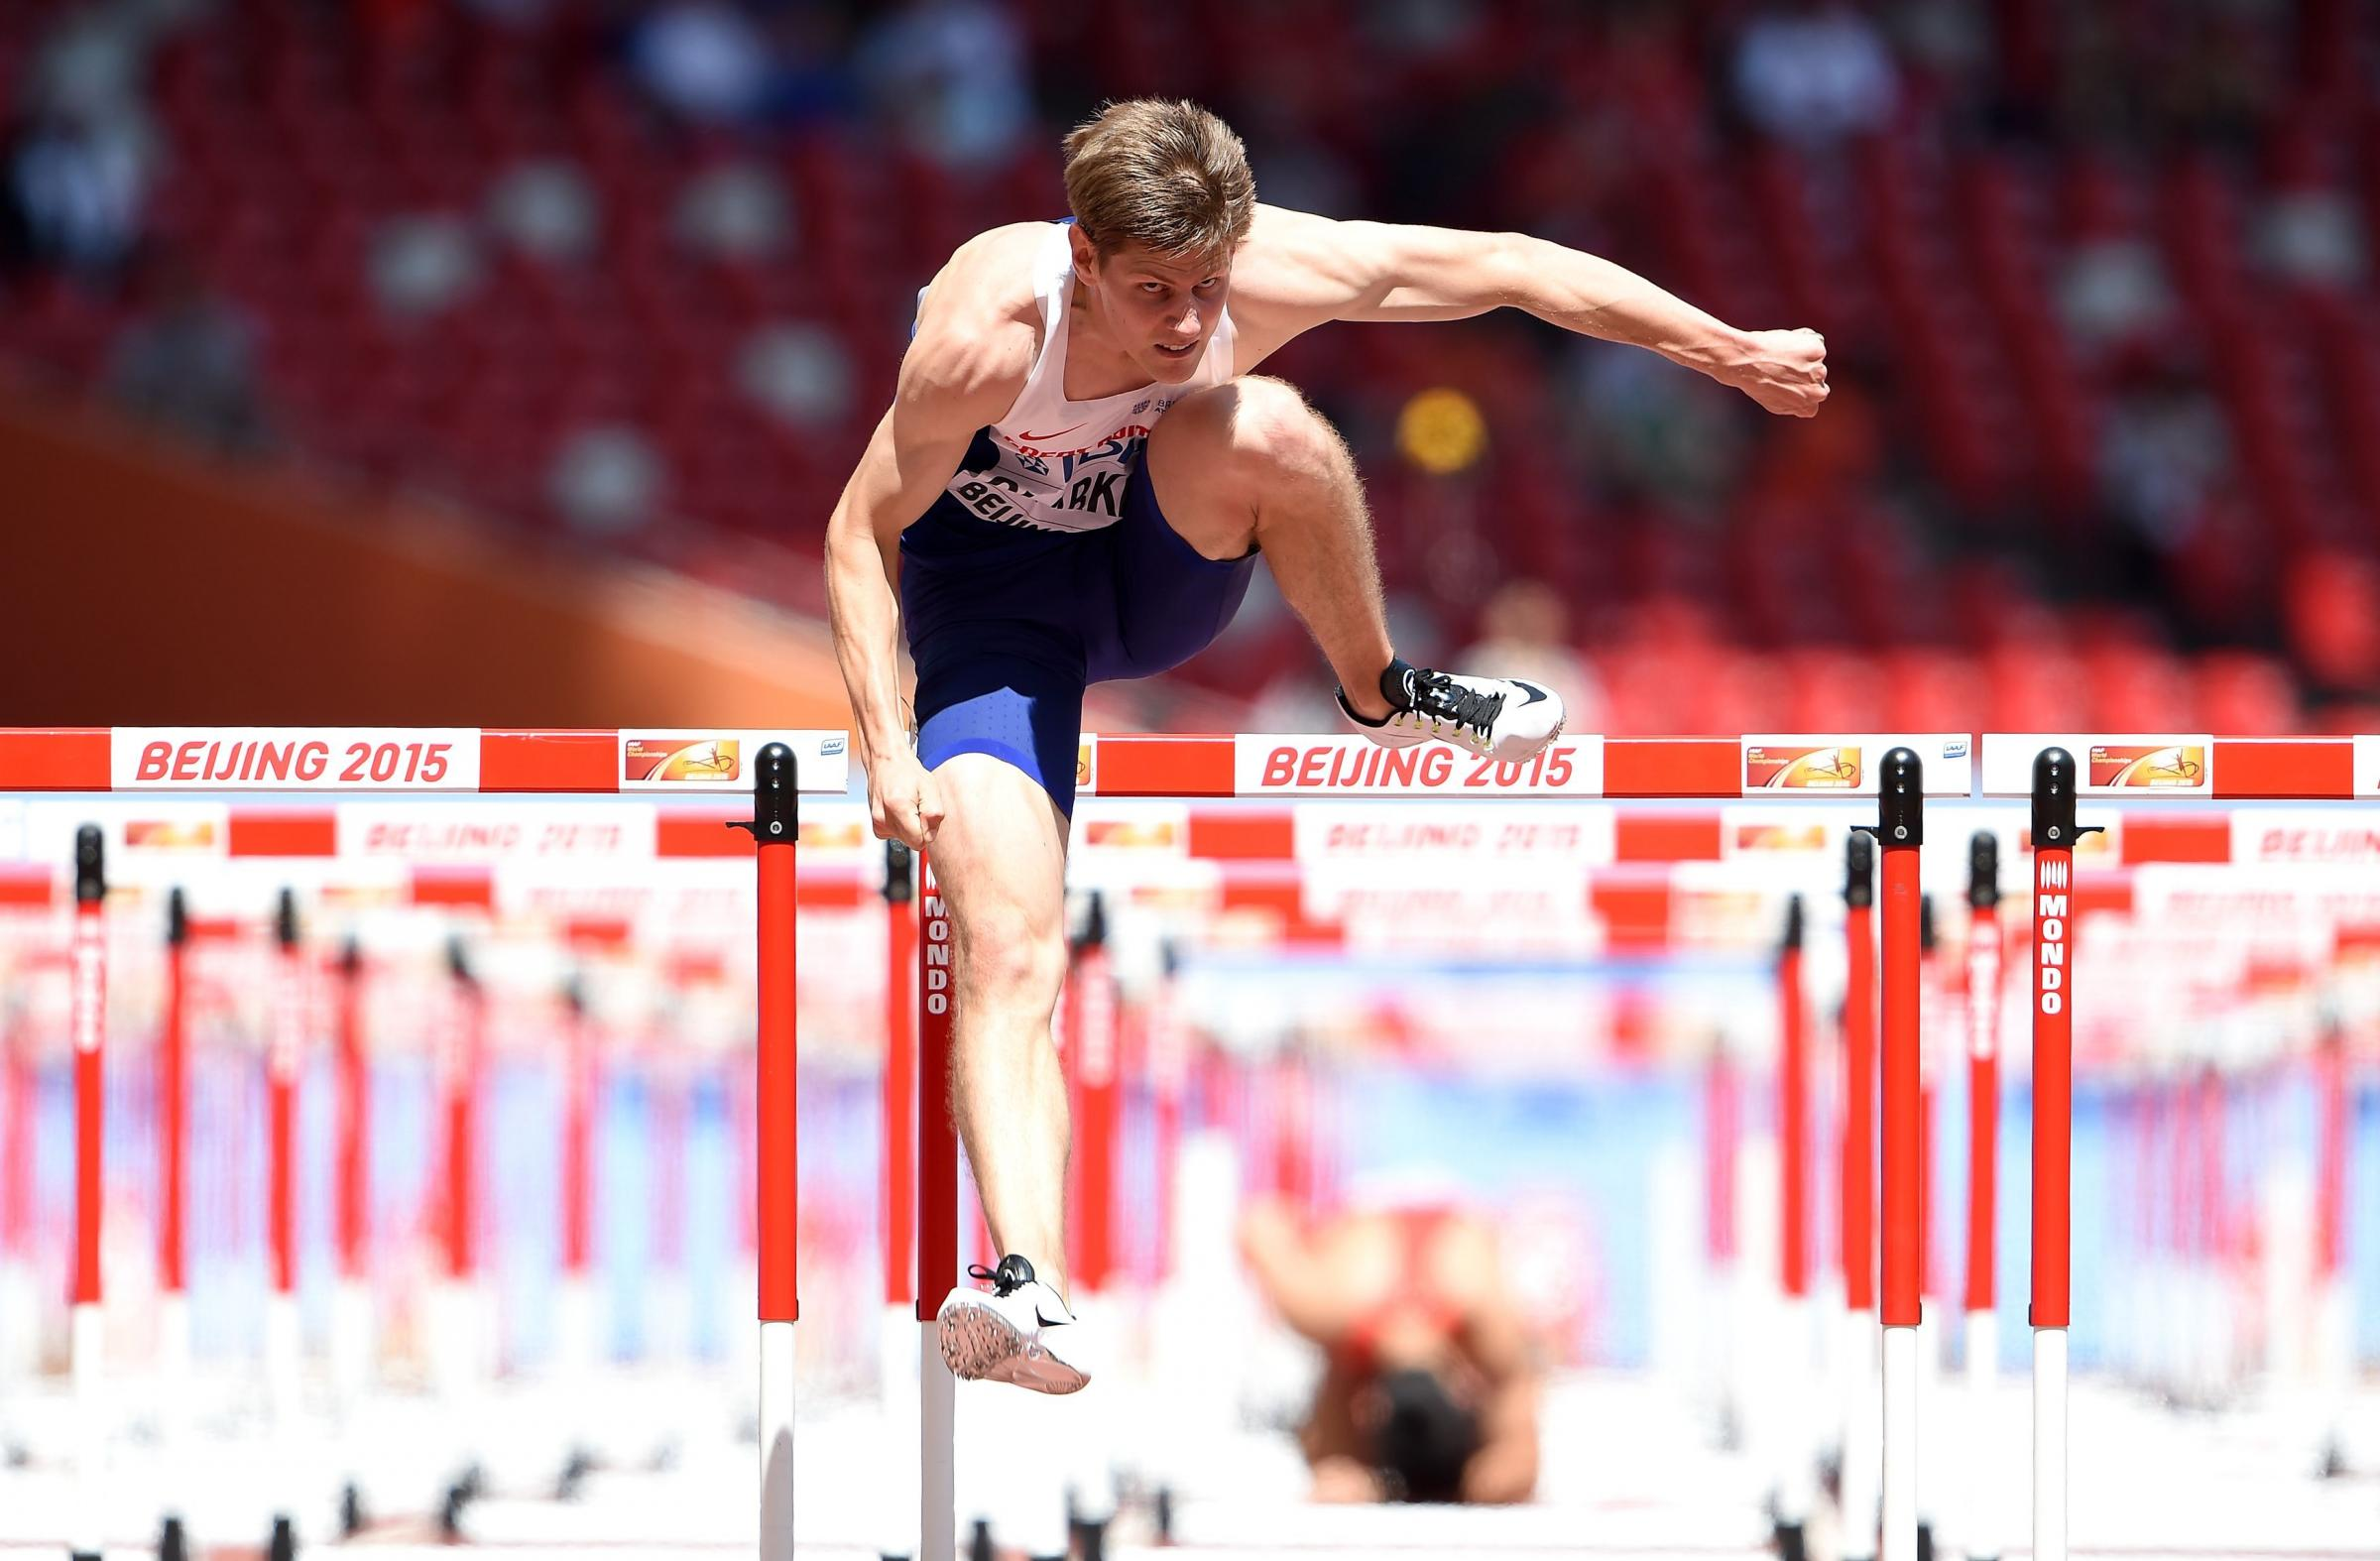 Lawrence Clarke on his way to qualifying for the semi-finals of the 110m hurdles at the IAAF World Championships in Beijing